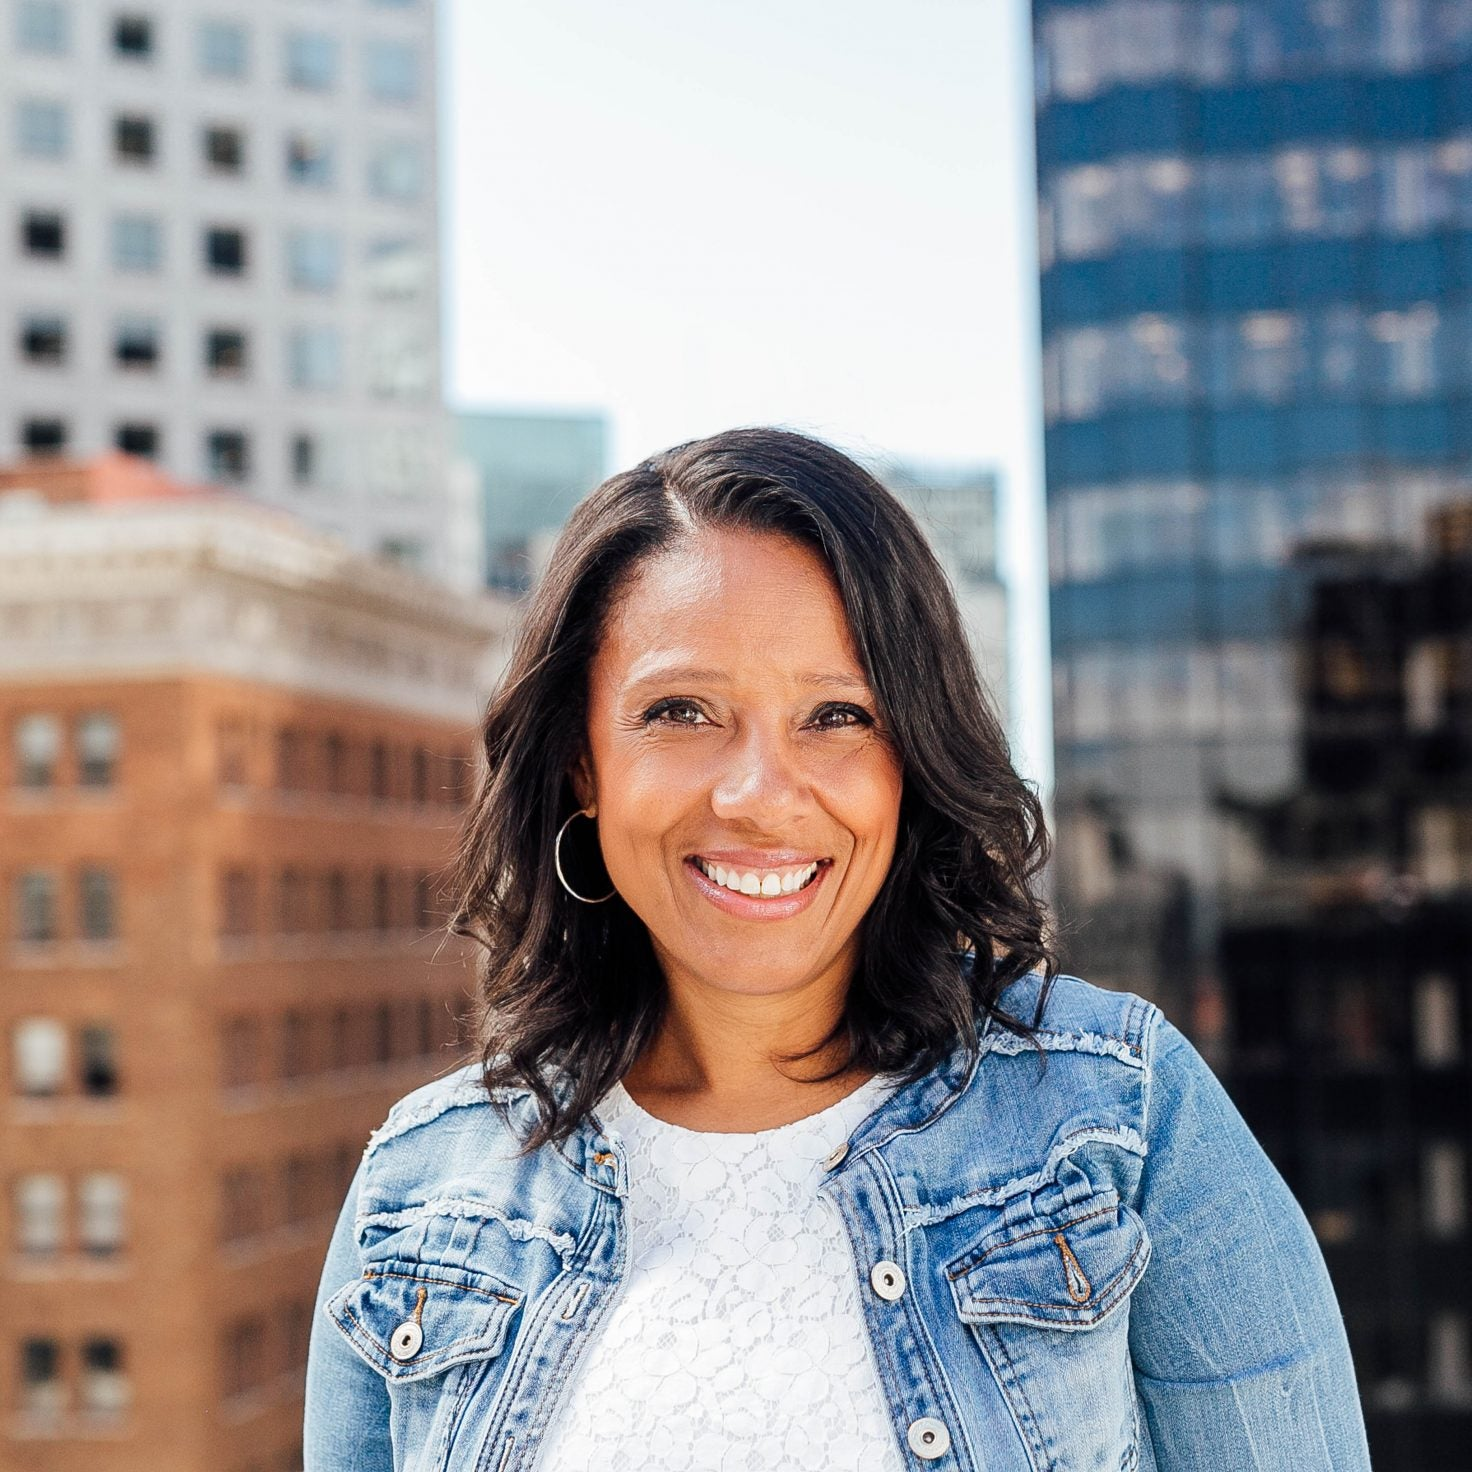 This Blockchain Executive Is Advocating For More Black Women To Enter The Fintech Space